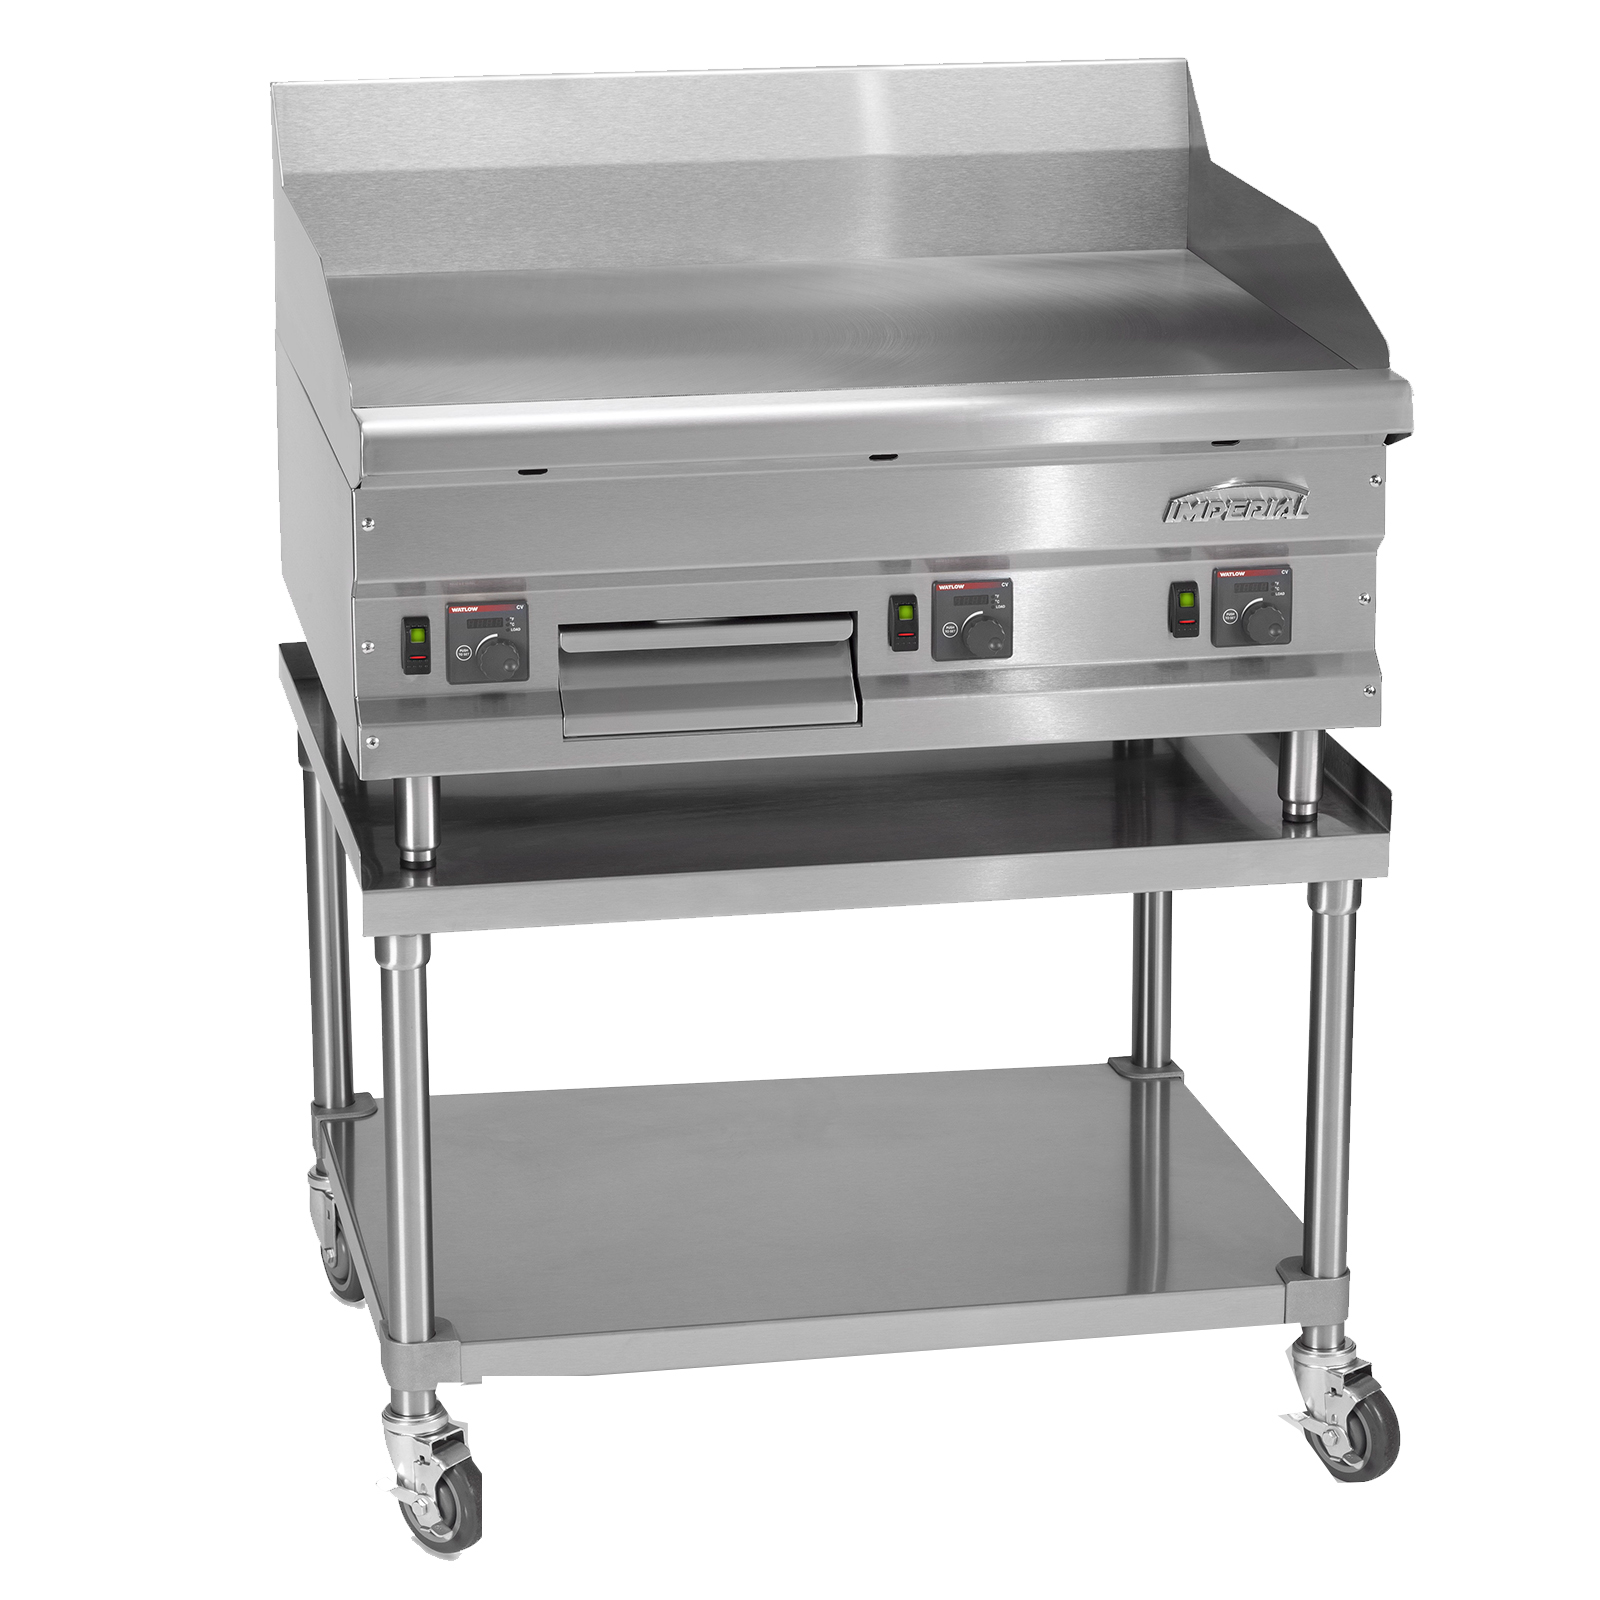 Imperial IHEG-36 griddle, gas, countertop